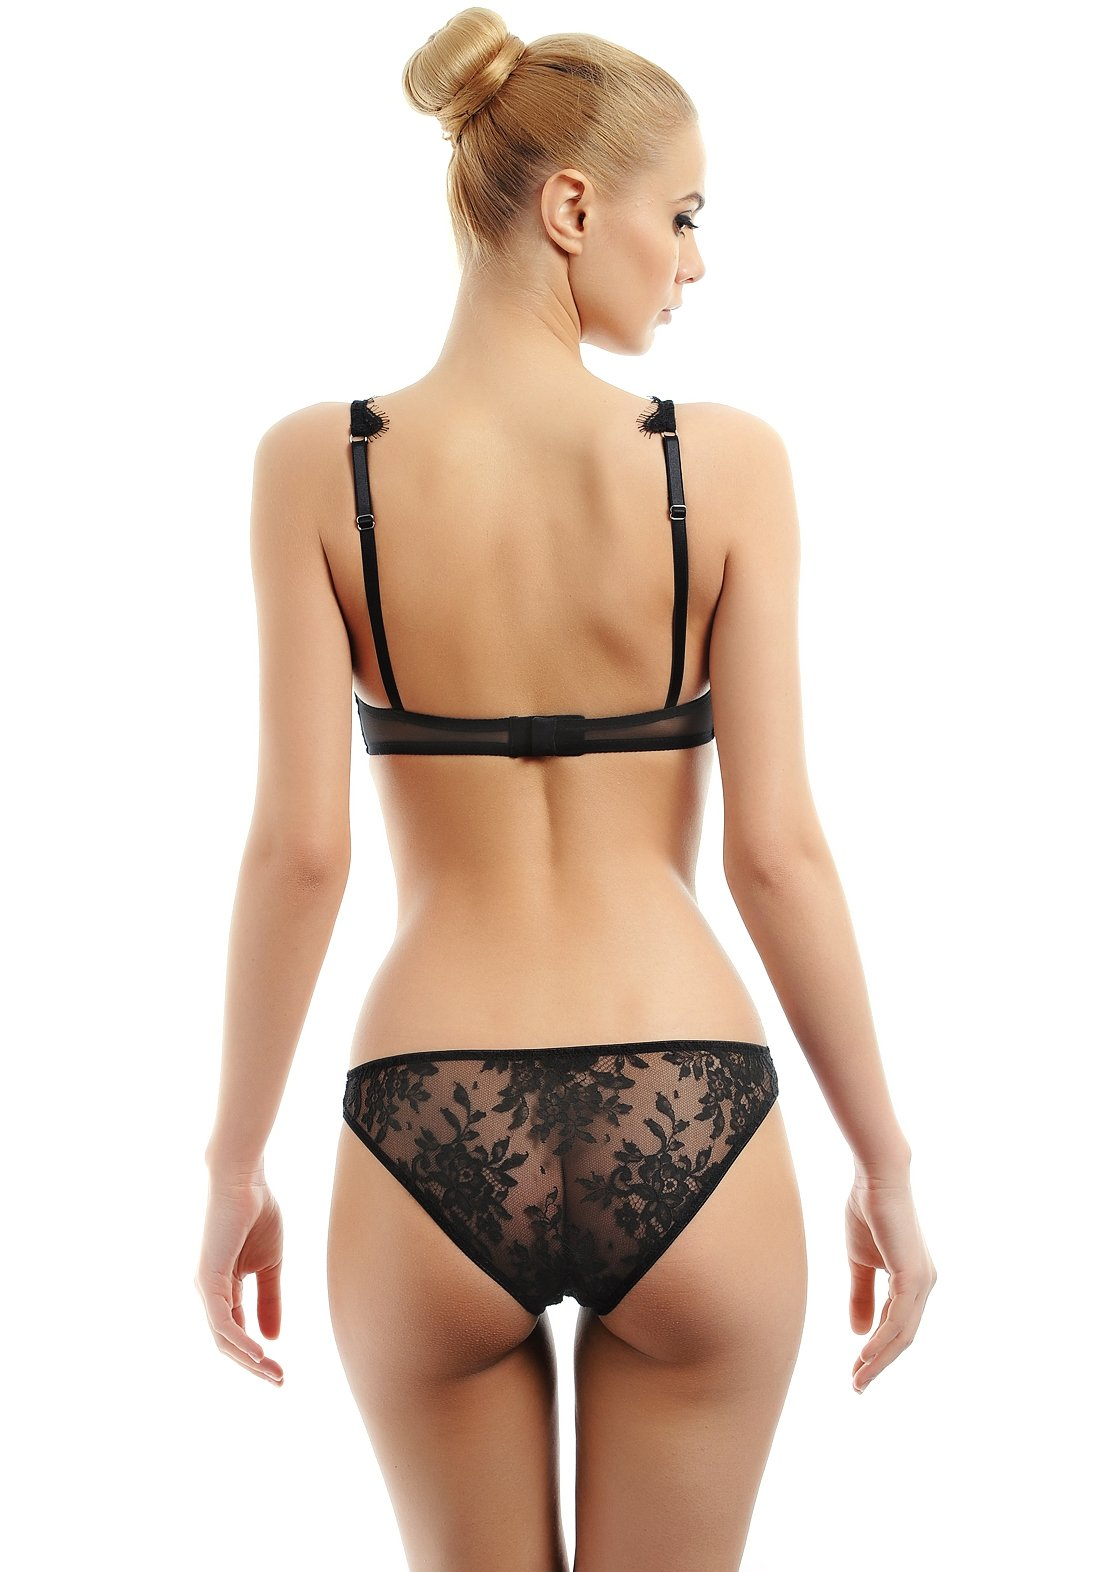 Vision d'Amour Triangle Bra in Noire